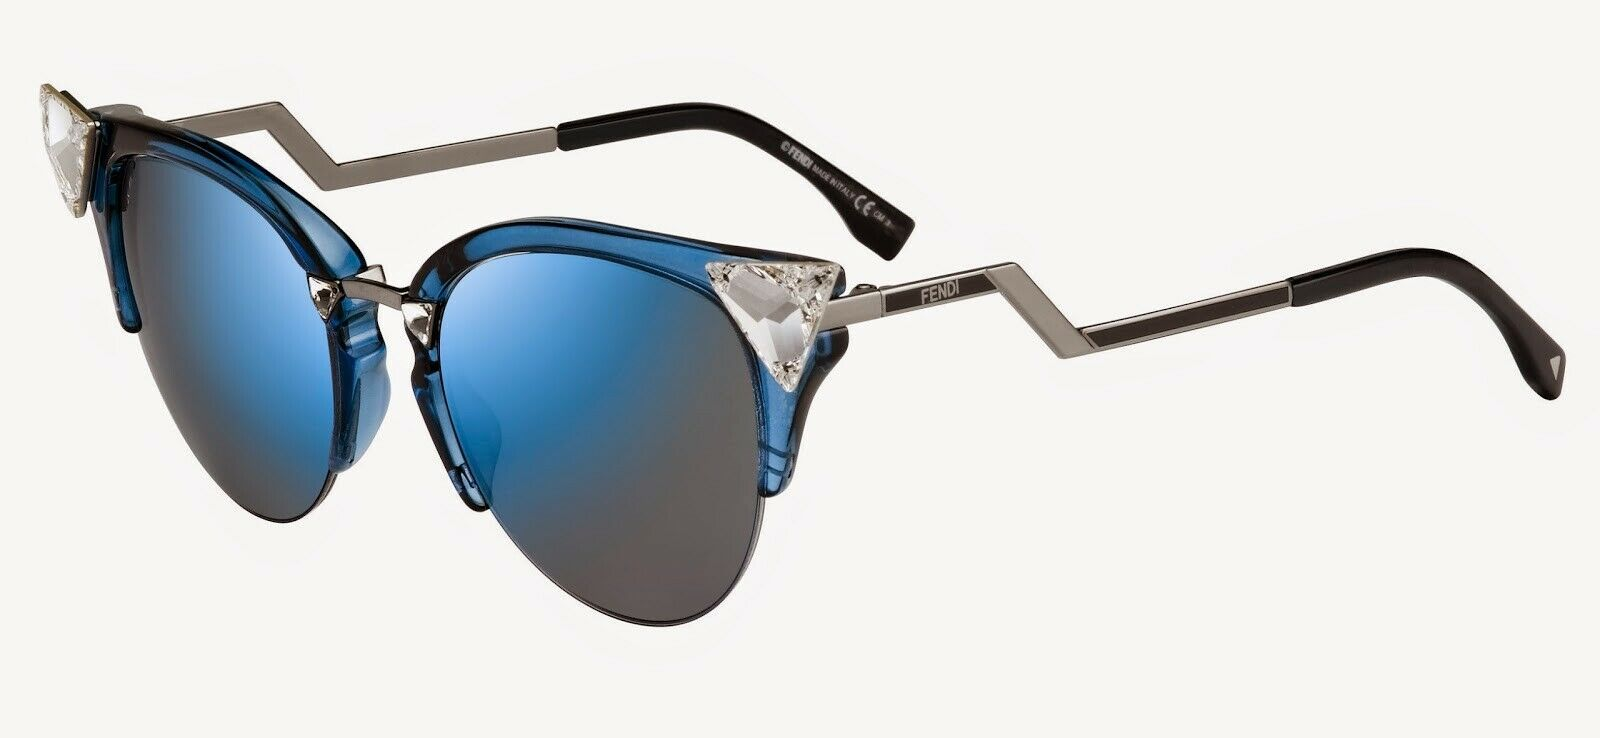 Primary image for FENDI IRIDIA FF 0042/S 9FB Ruthenium Grey Blue Cat Eye Crystal-Tip Sunglasses